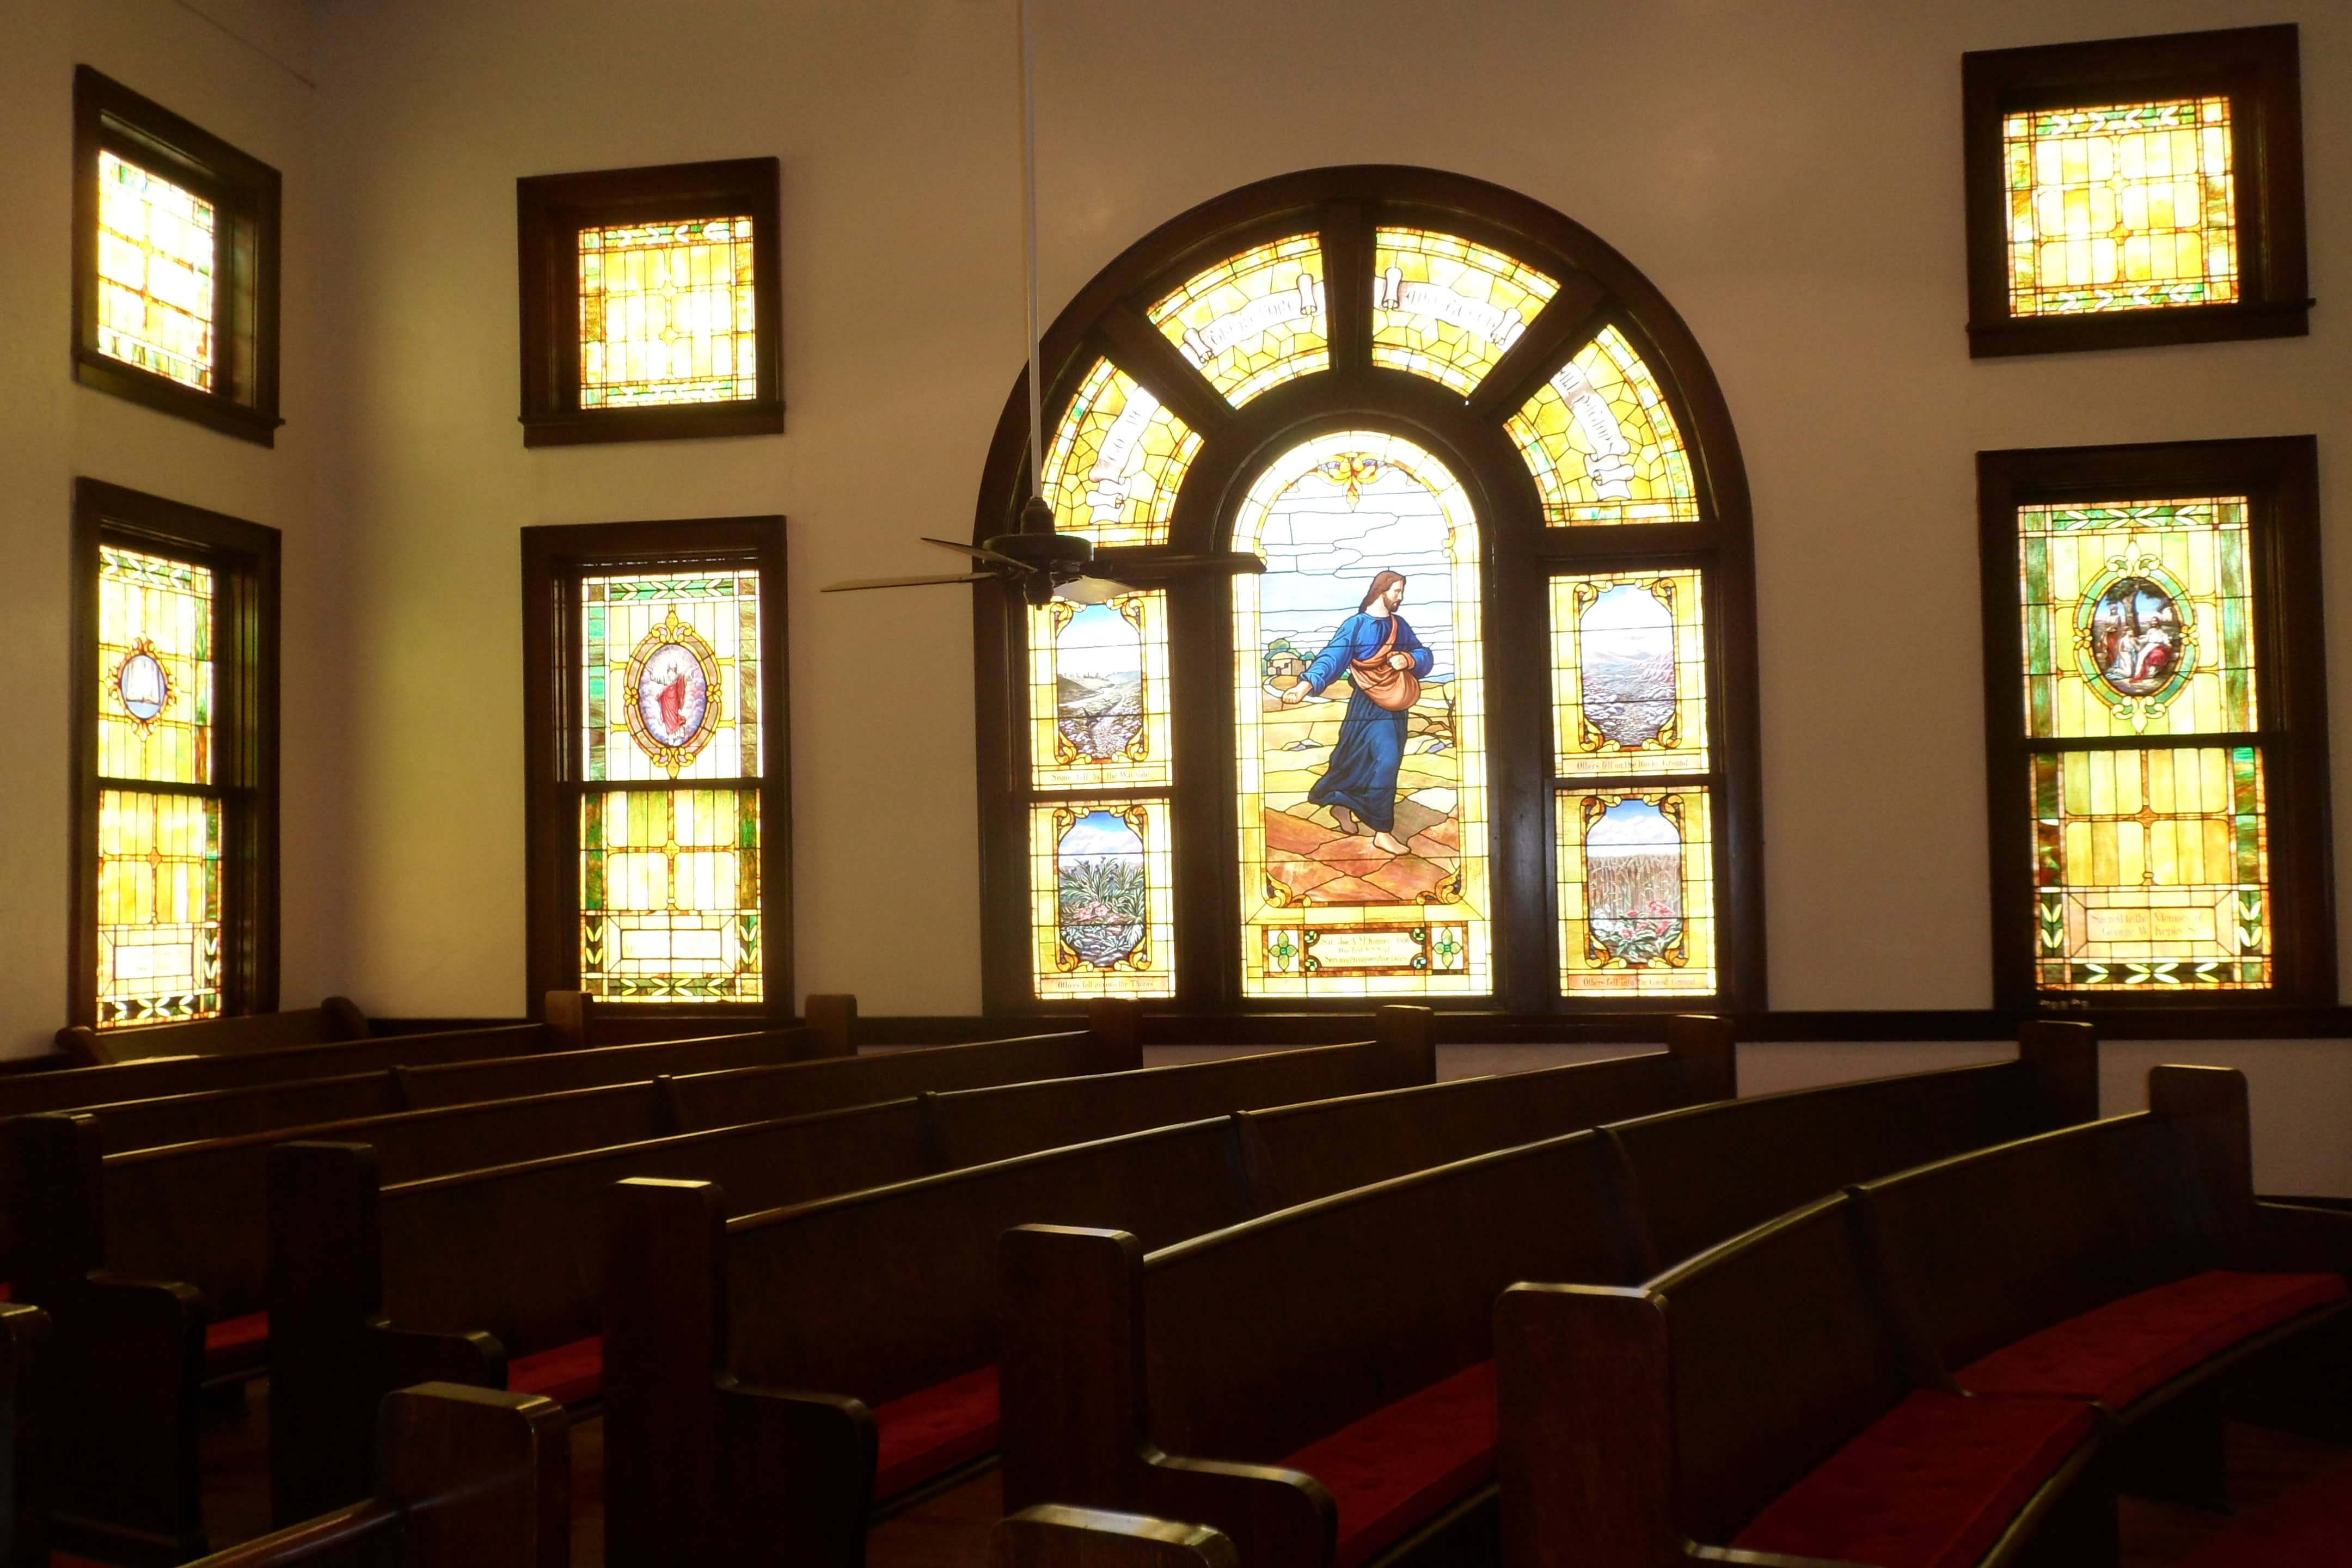 2-Stained Glass Window.JPG